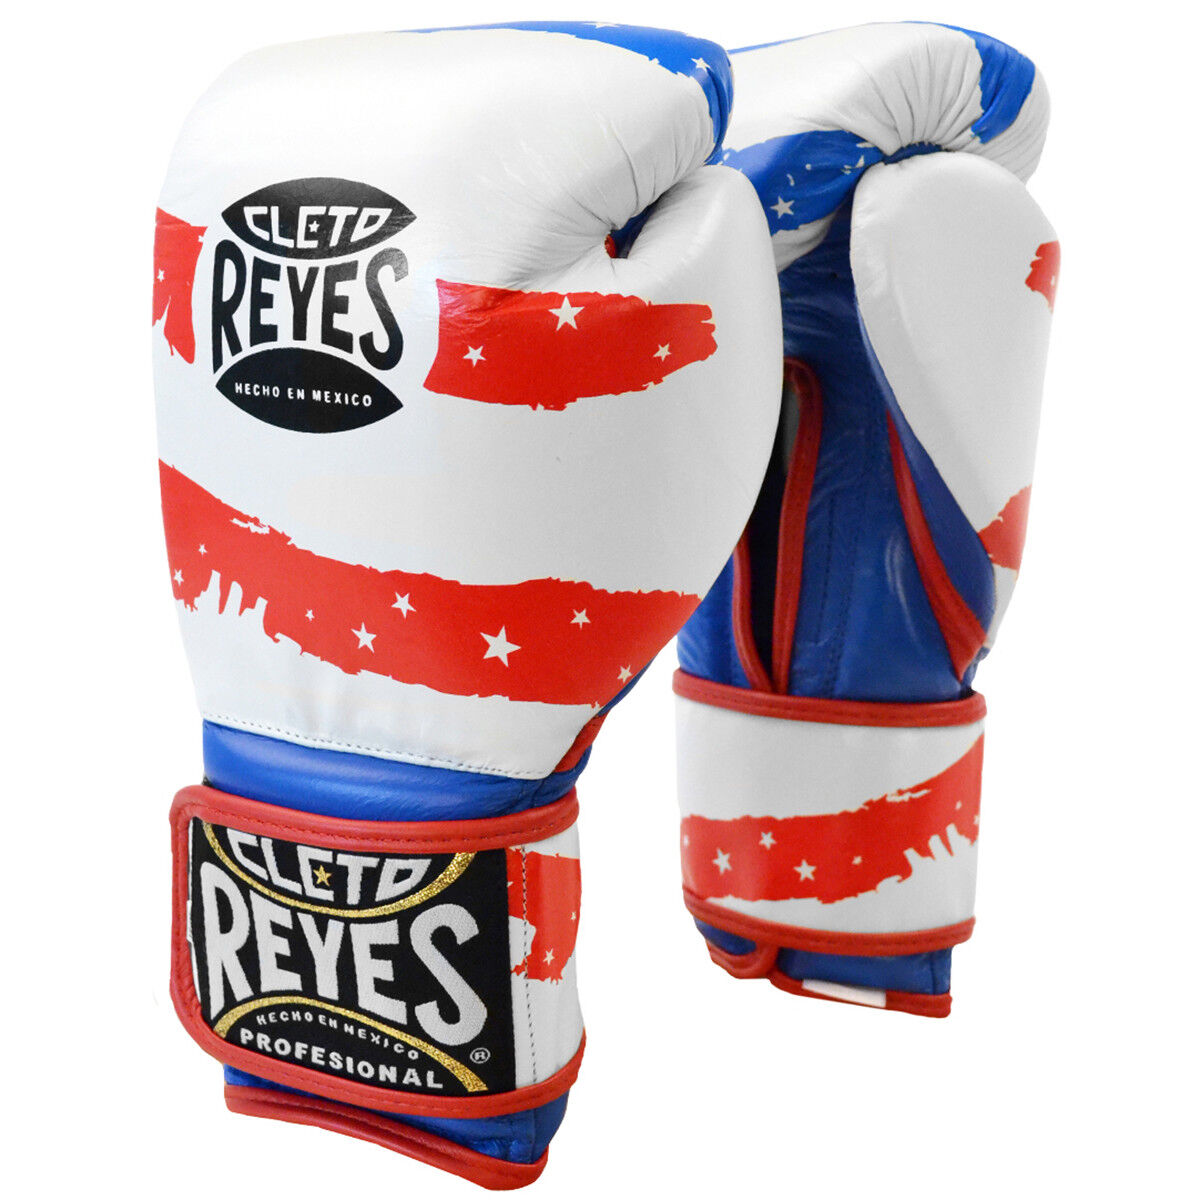 Cleto  Reyes Hook and Loop Leather Training Boxing G s - USA  online outlet sale